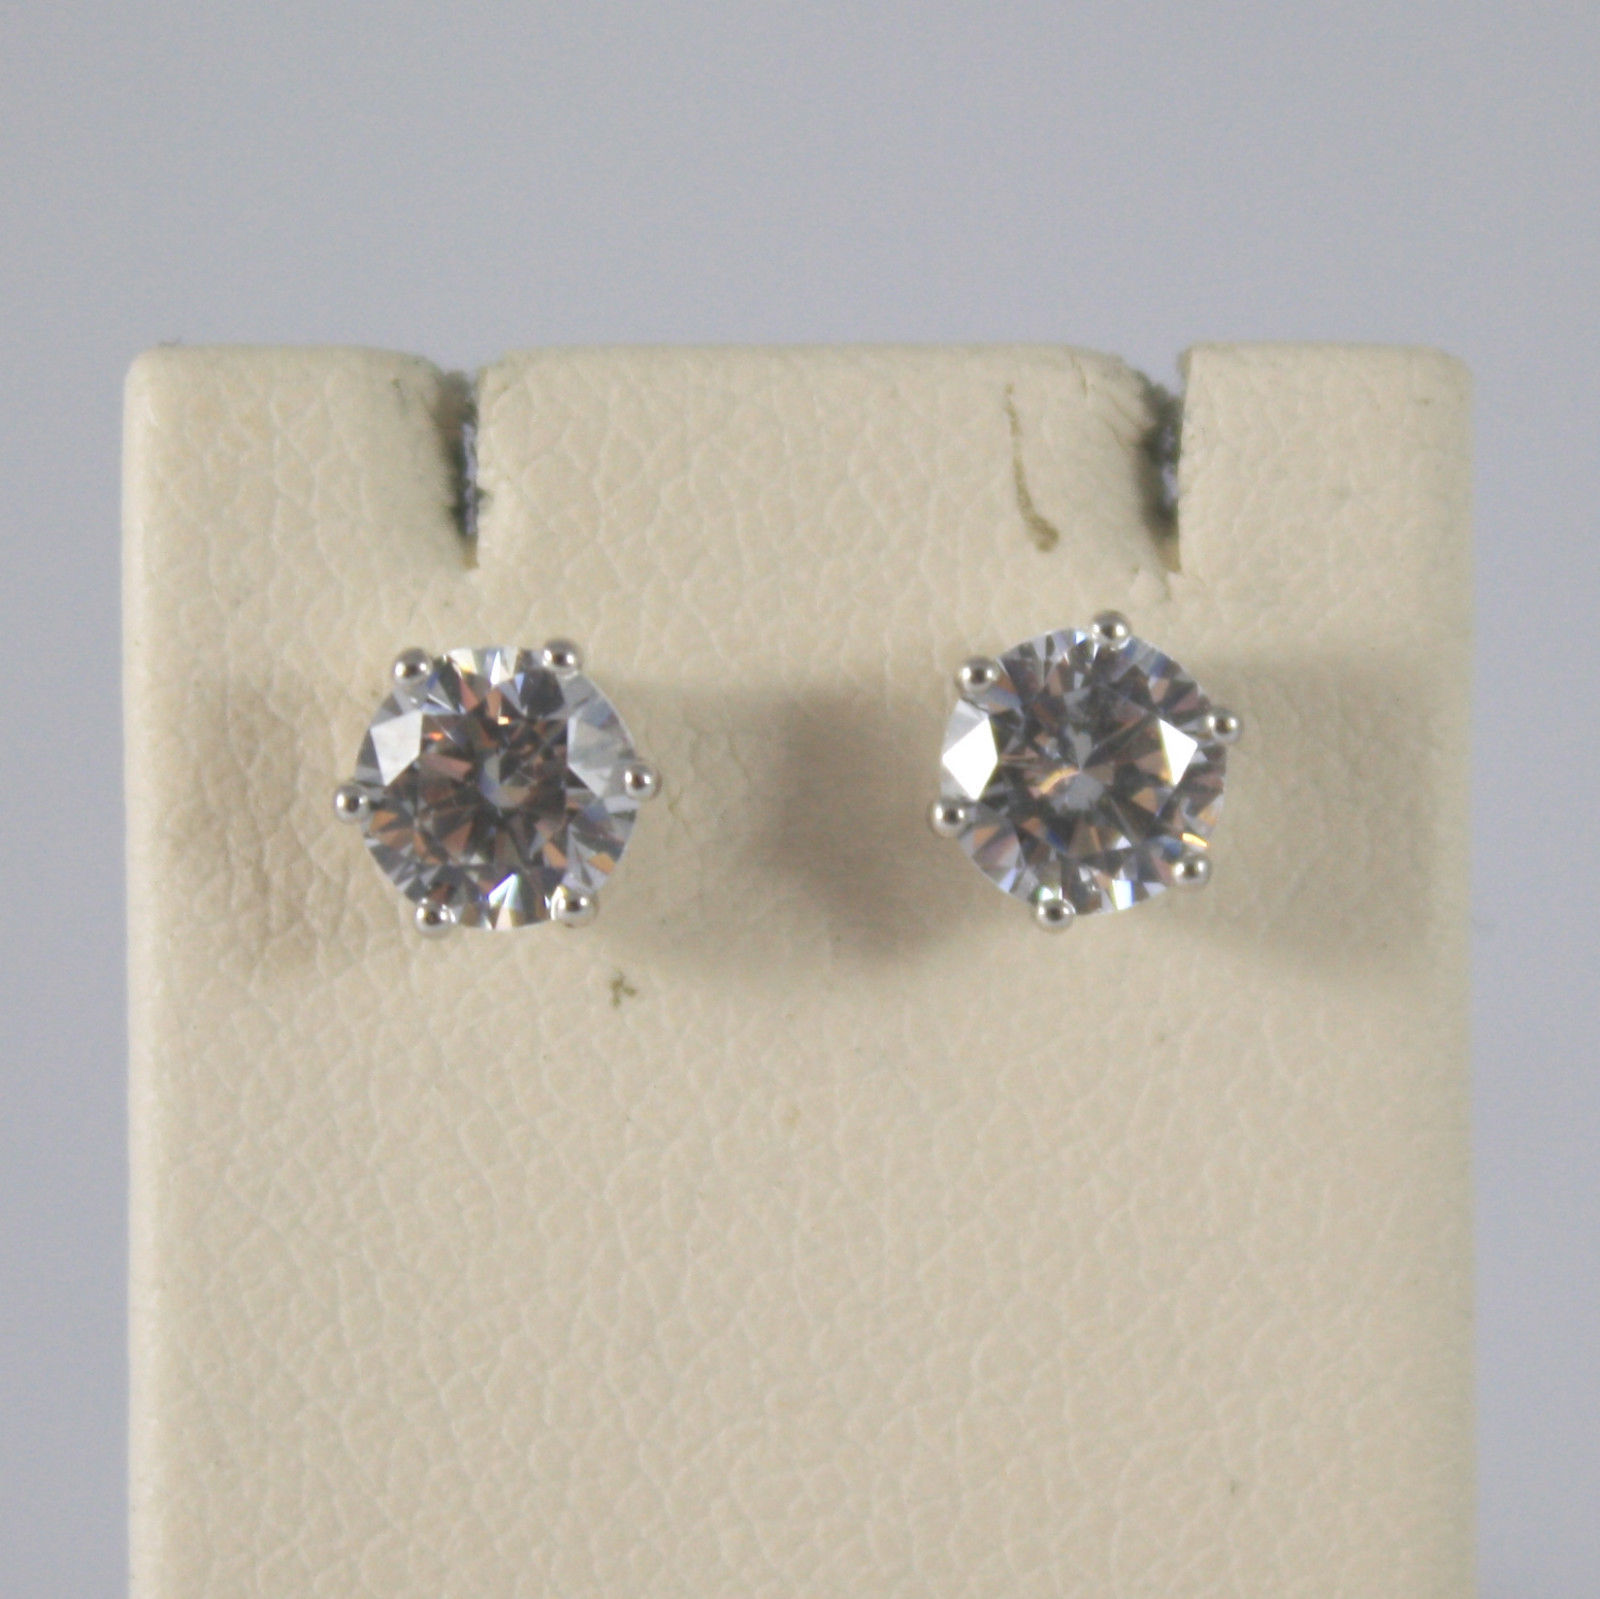 SOLID 18KT.WHITE GOLD EARRINGS, WITH ZIRCONIA, WIDTH 0,2 IN MADE IN ITALY.